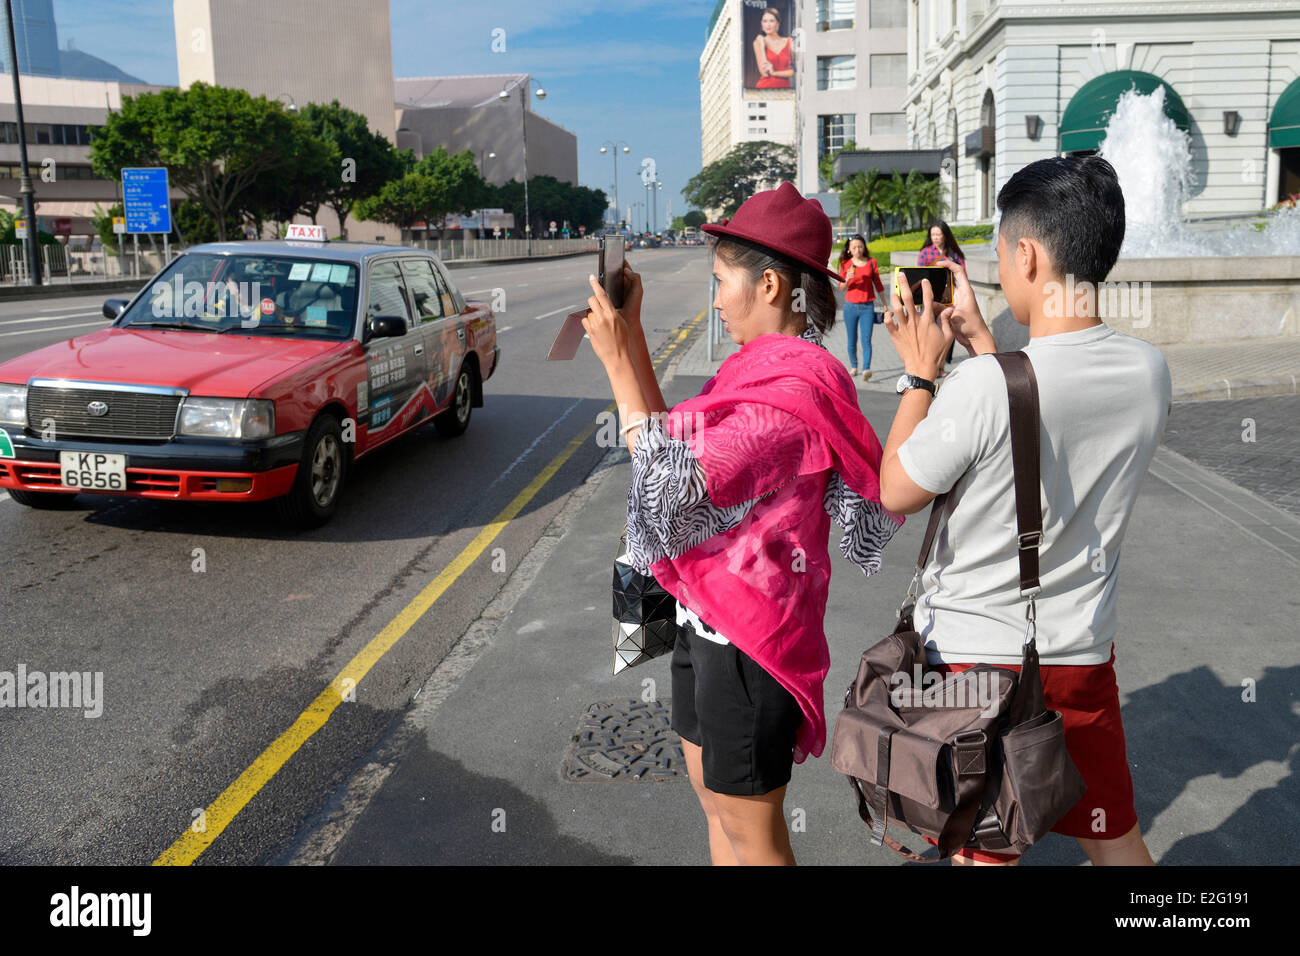 China Hong Kong Kowloon District couple of Asian tourists taking a photo with their mobile phone - Stock Image